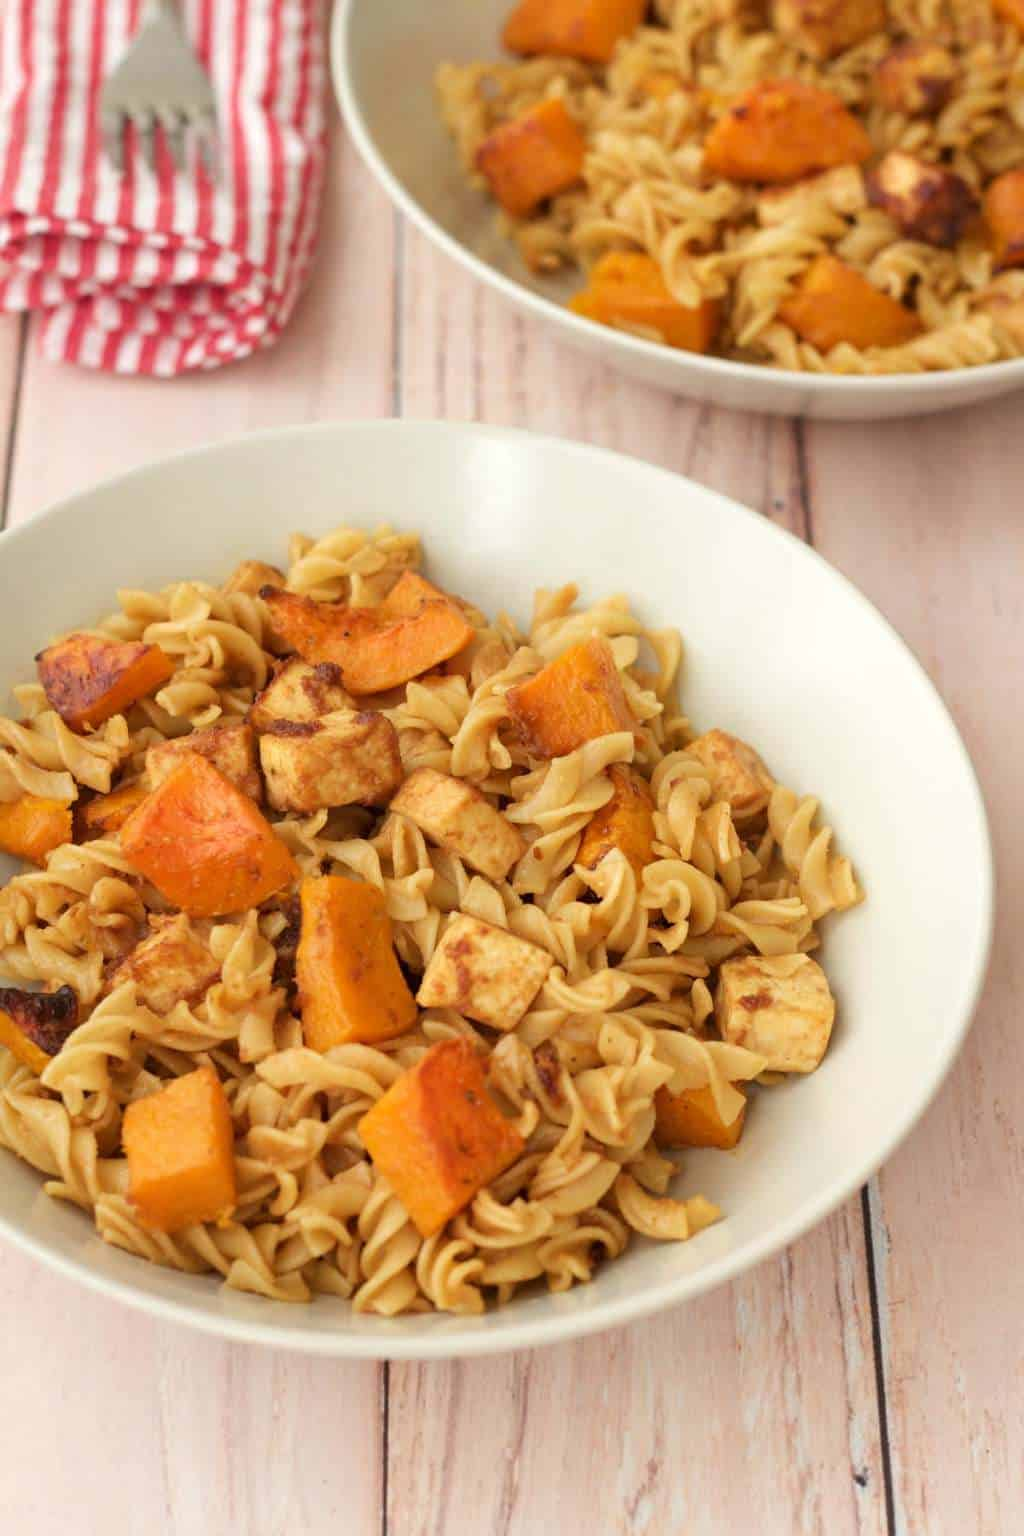 Spicy Peanut Pasta with Roasted Butternut and Crispy Tofu #vegan #lovingitvegan #entree #pasta #dinner